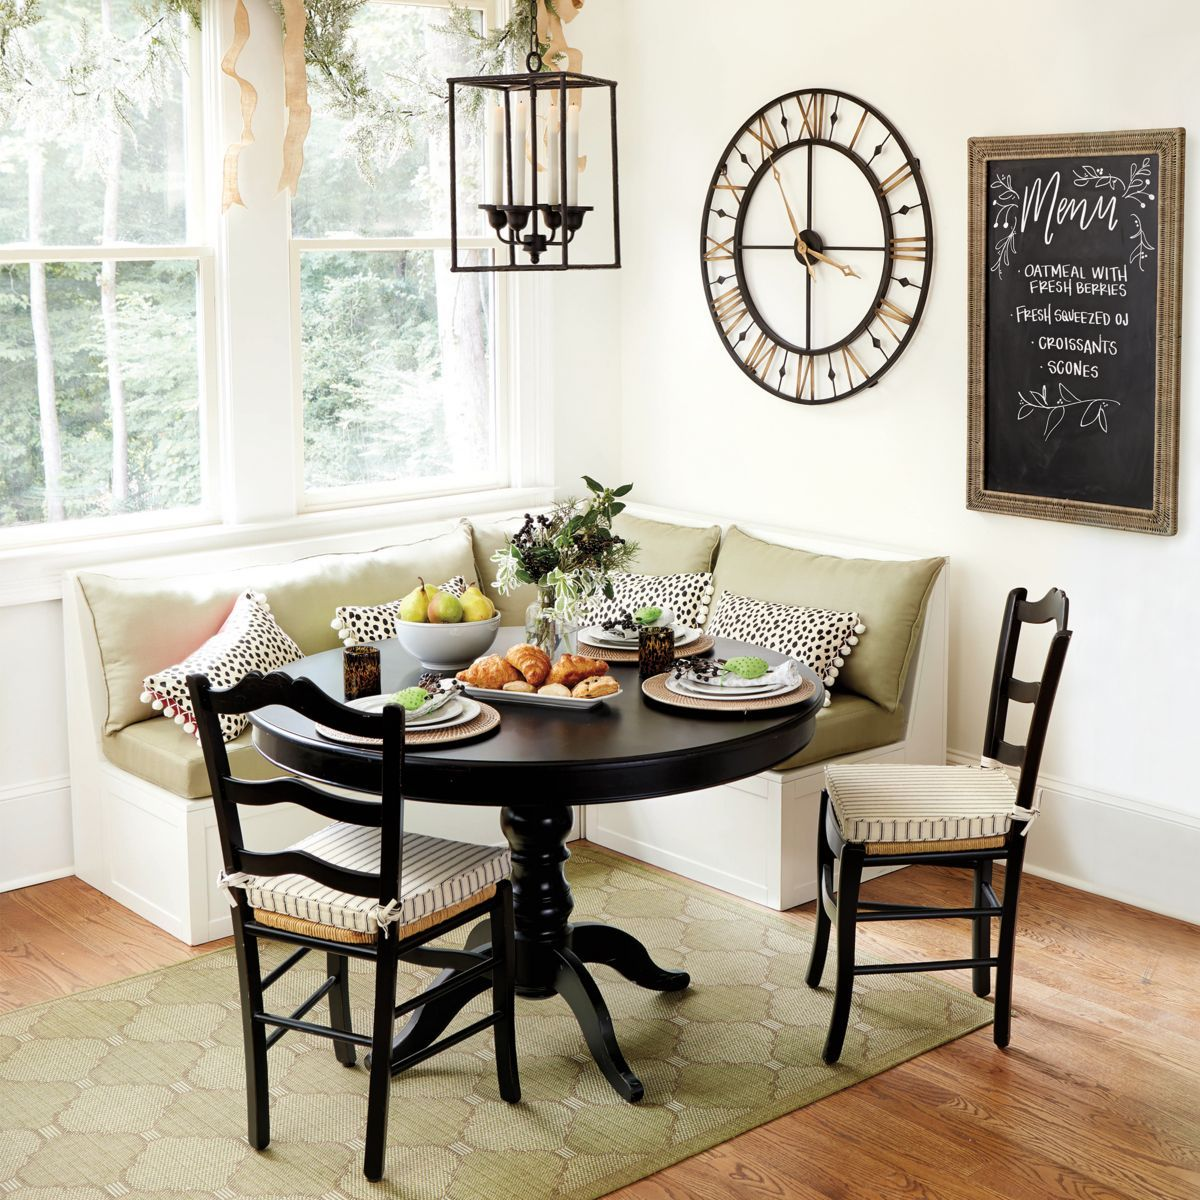 breton 3 piece banquette home design ideas pinterest breton 3 piece banquette